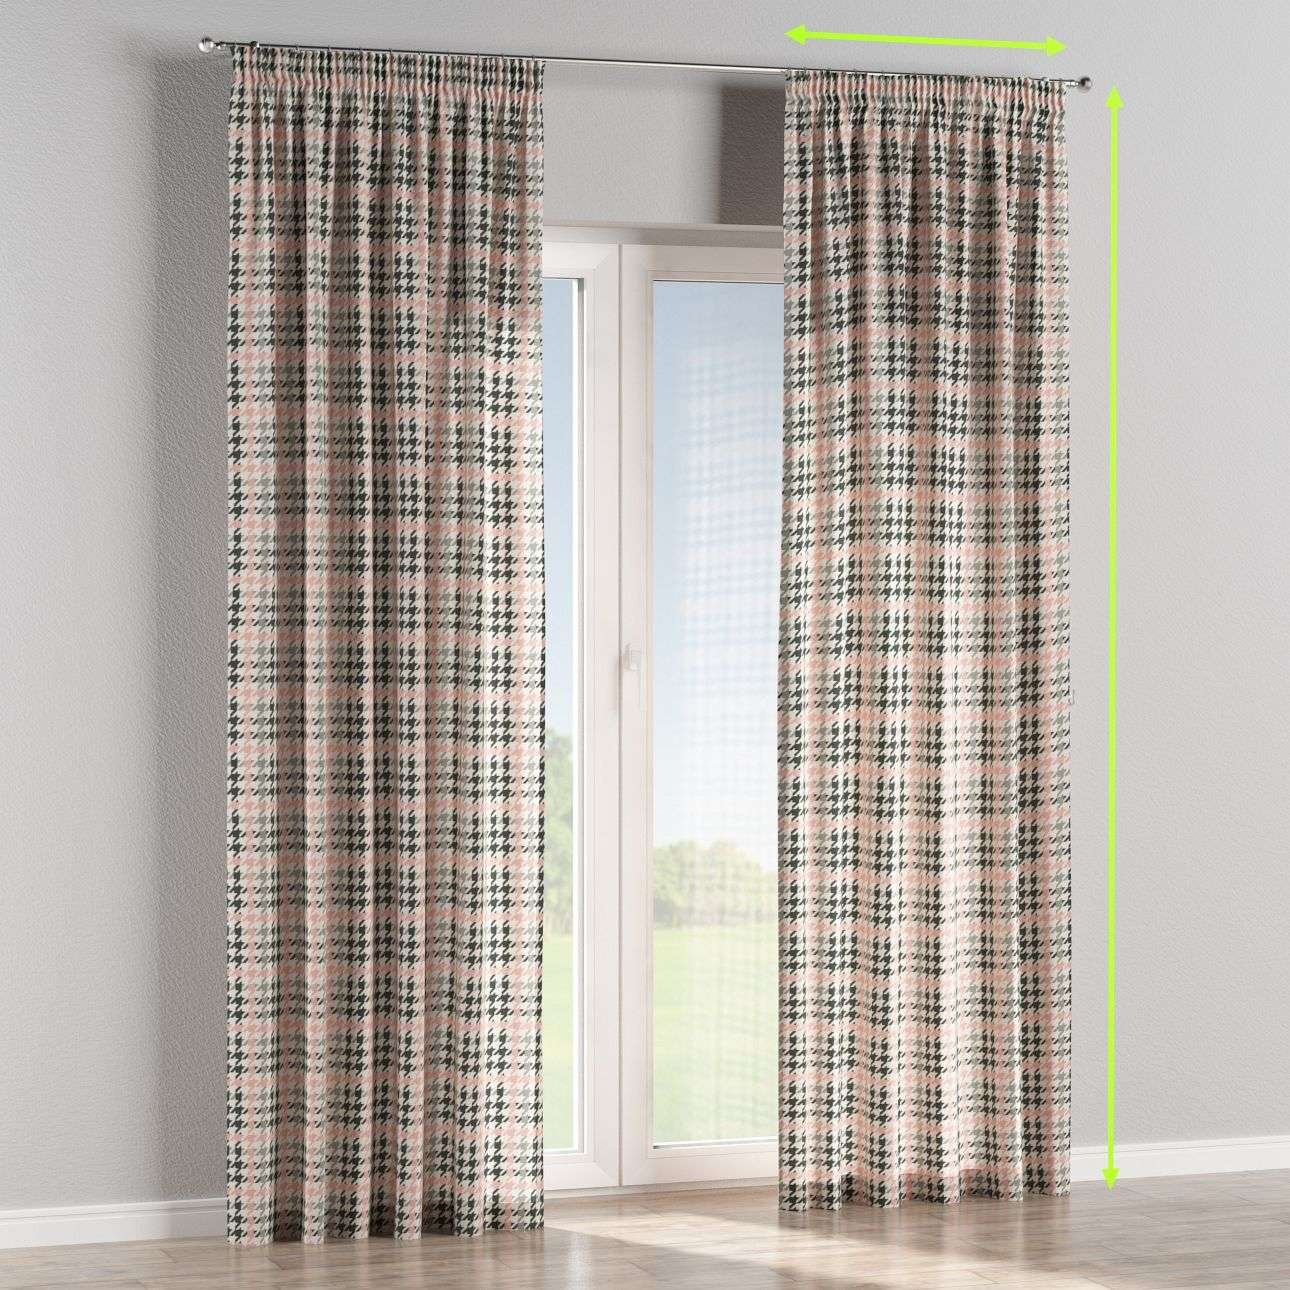 Pencil pleat curtain in collection Brooklyn, fabric: 137-75